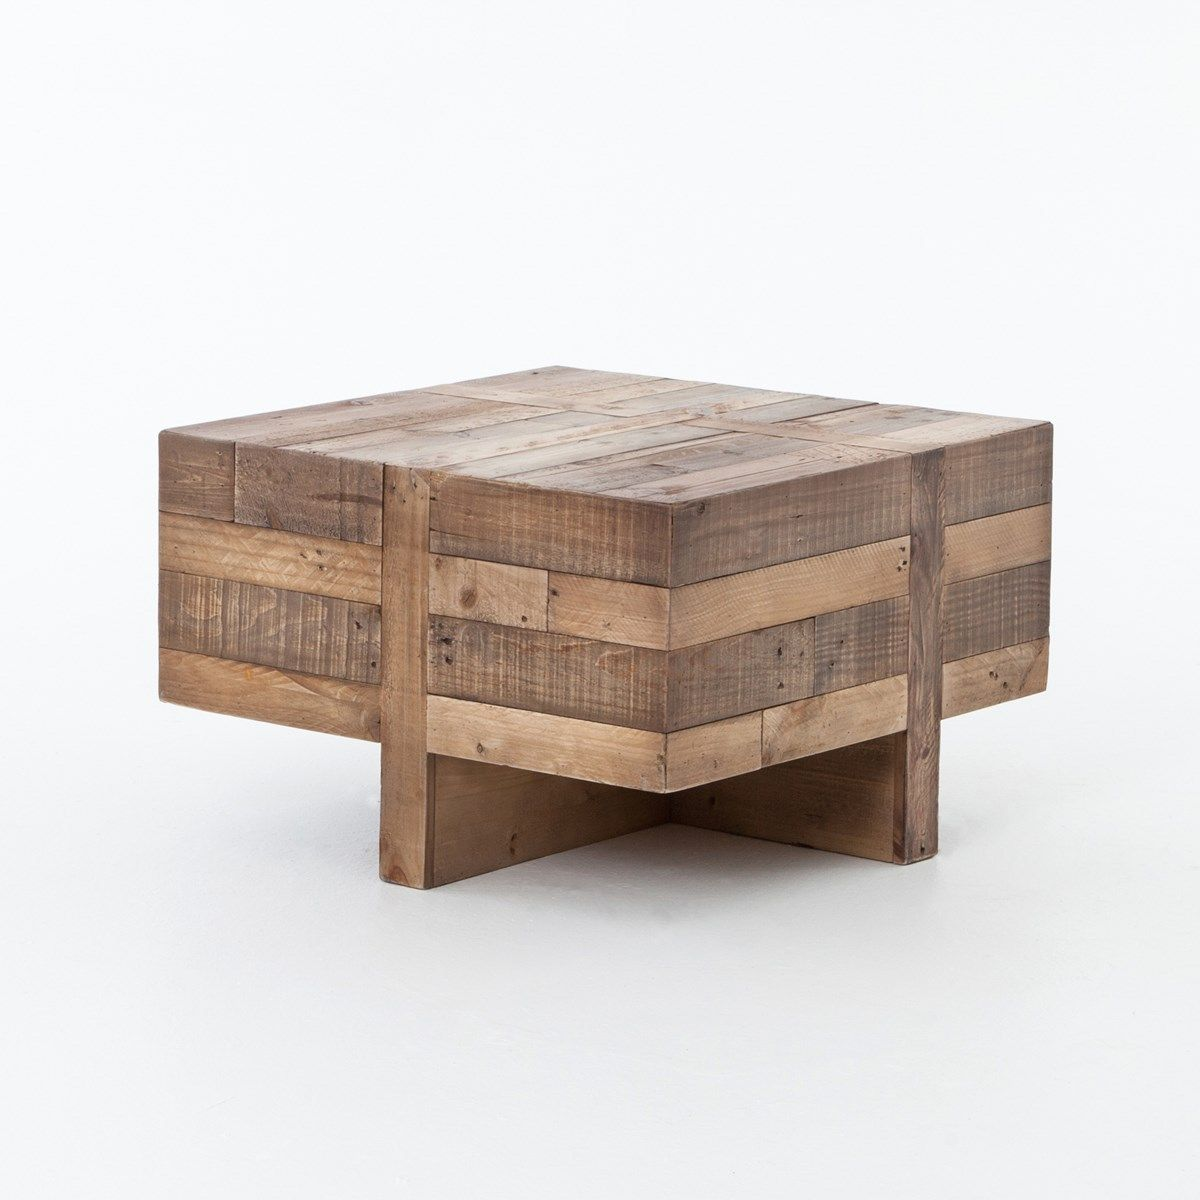 Angora Reclaimed Wood Square Side Table Square Side Table Wood Coffee Table Wood Square Side Table [ 1200 x 1200 Pixel ]